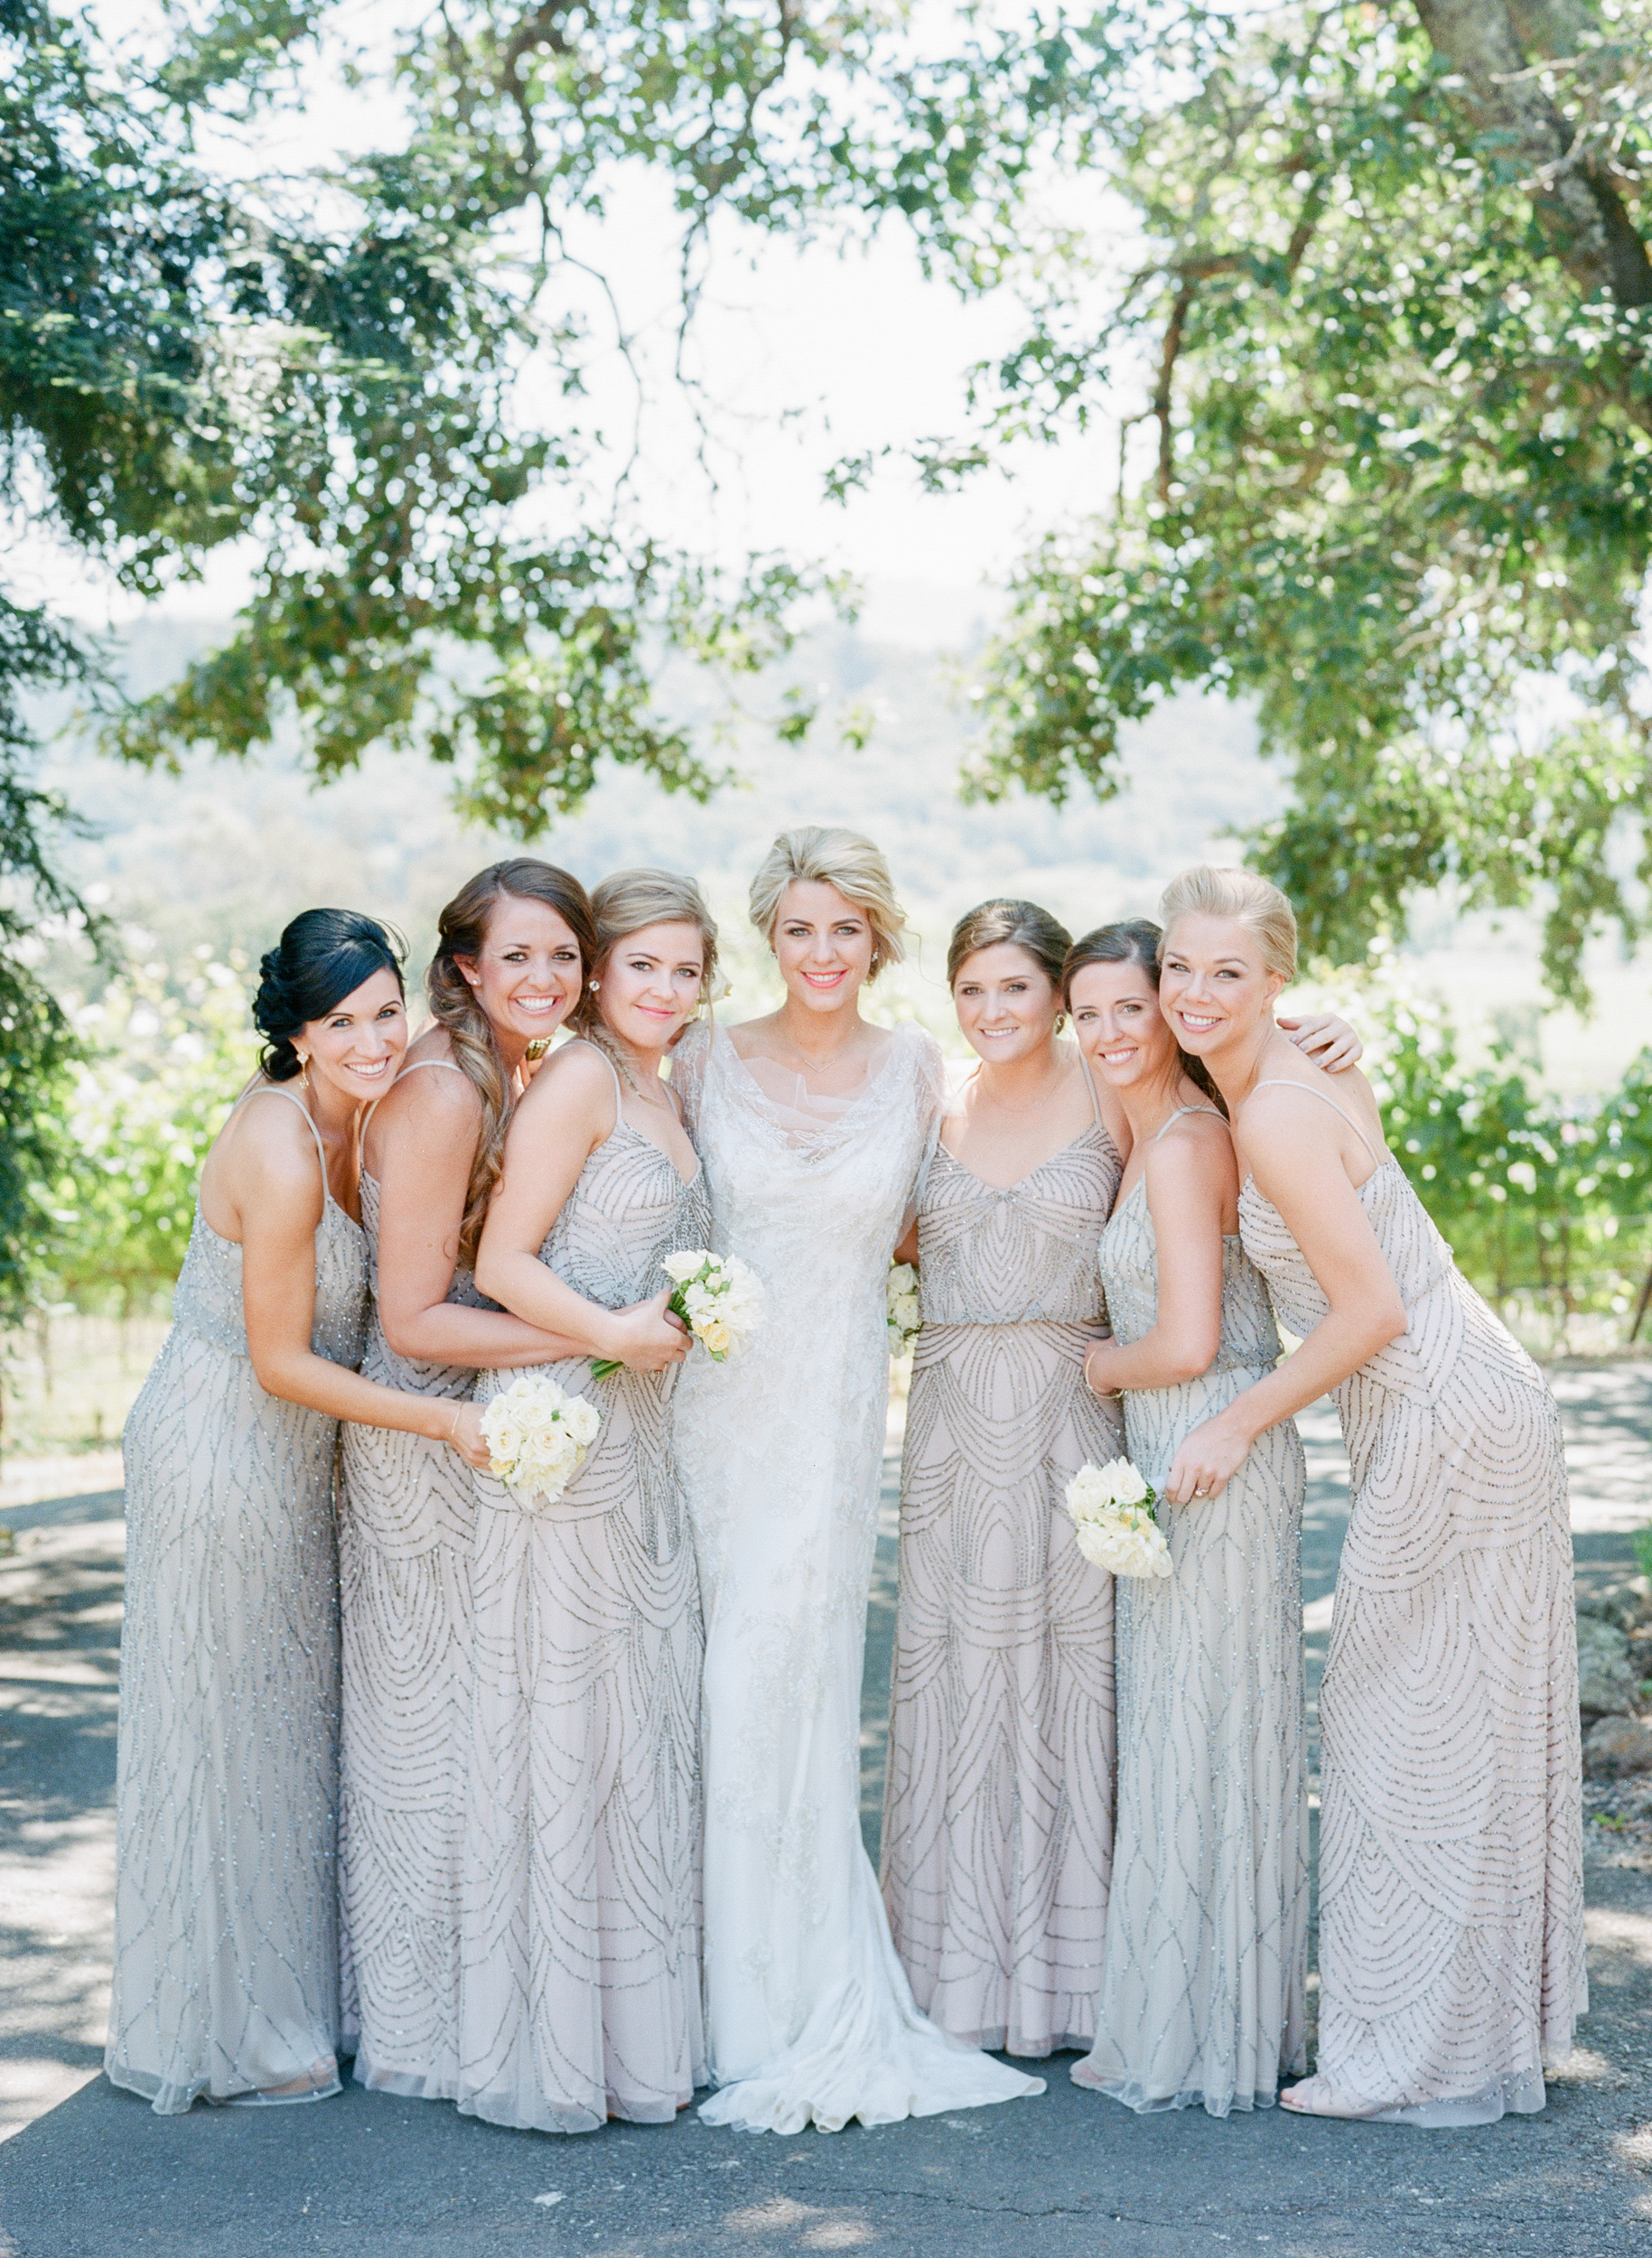 Sylvie-Gil-film-destination-photography-Kunde-winery-Napa-Valley-elegant-shabby-chic-bride-bridesmaids-lean-in